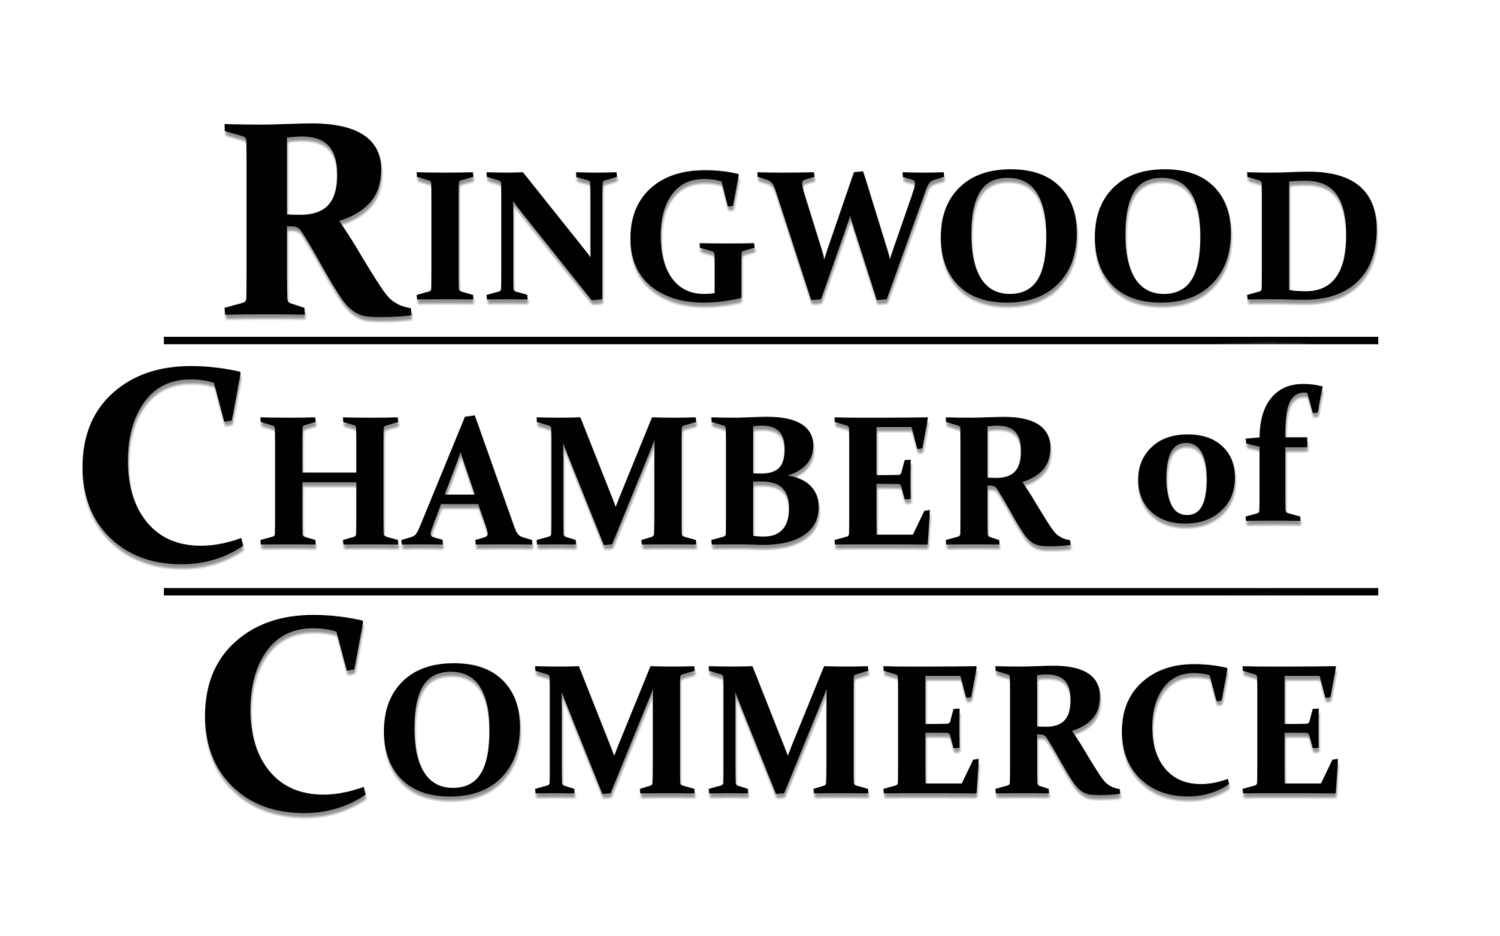 Ringwood Chamber of Commerce